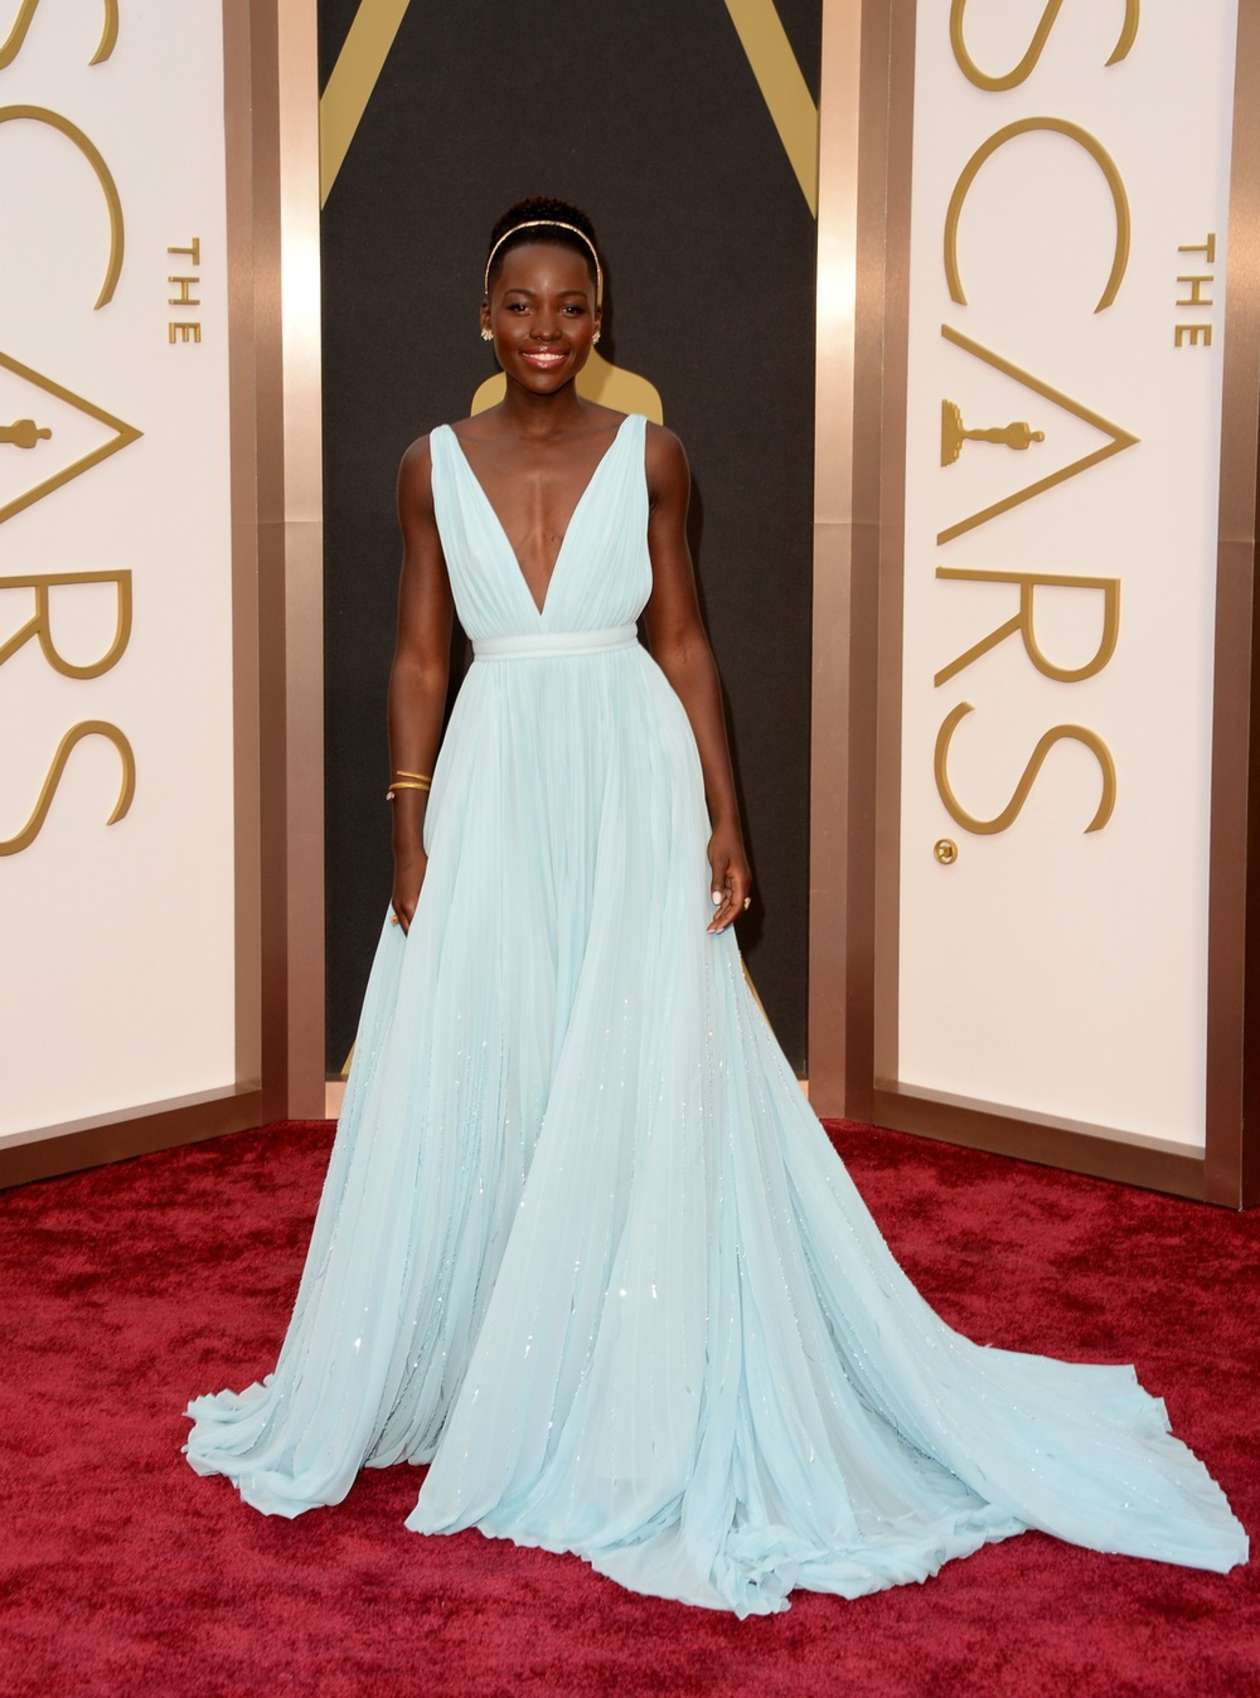 Lupita Nyong'o Is the New Face of Lancôme! — See Her First Campaign Ad (VIDEO)